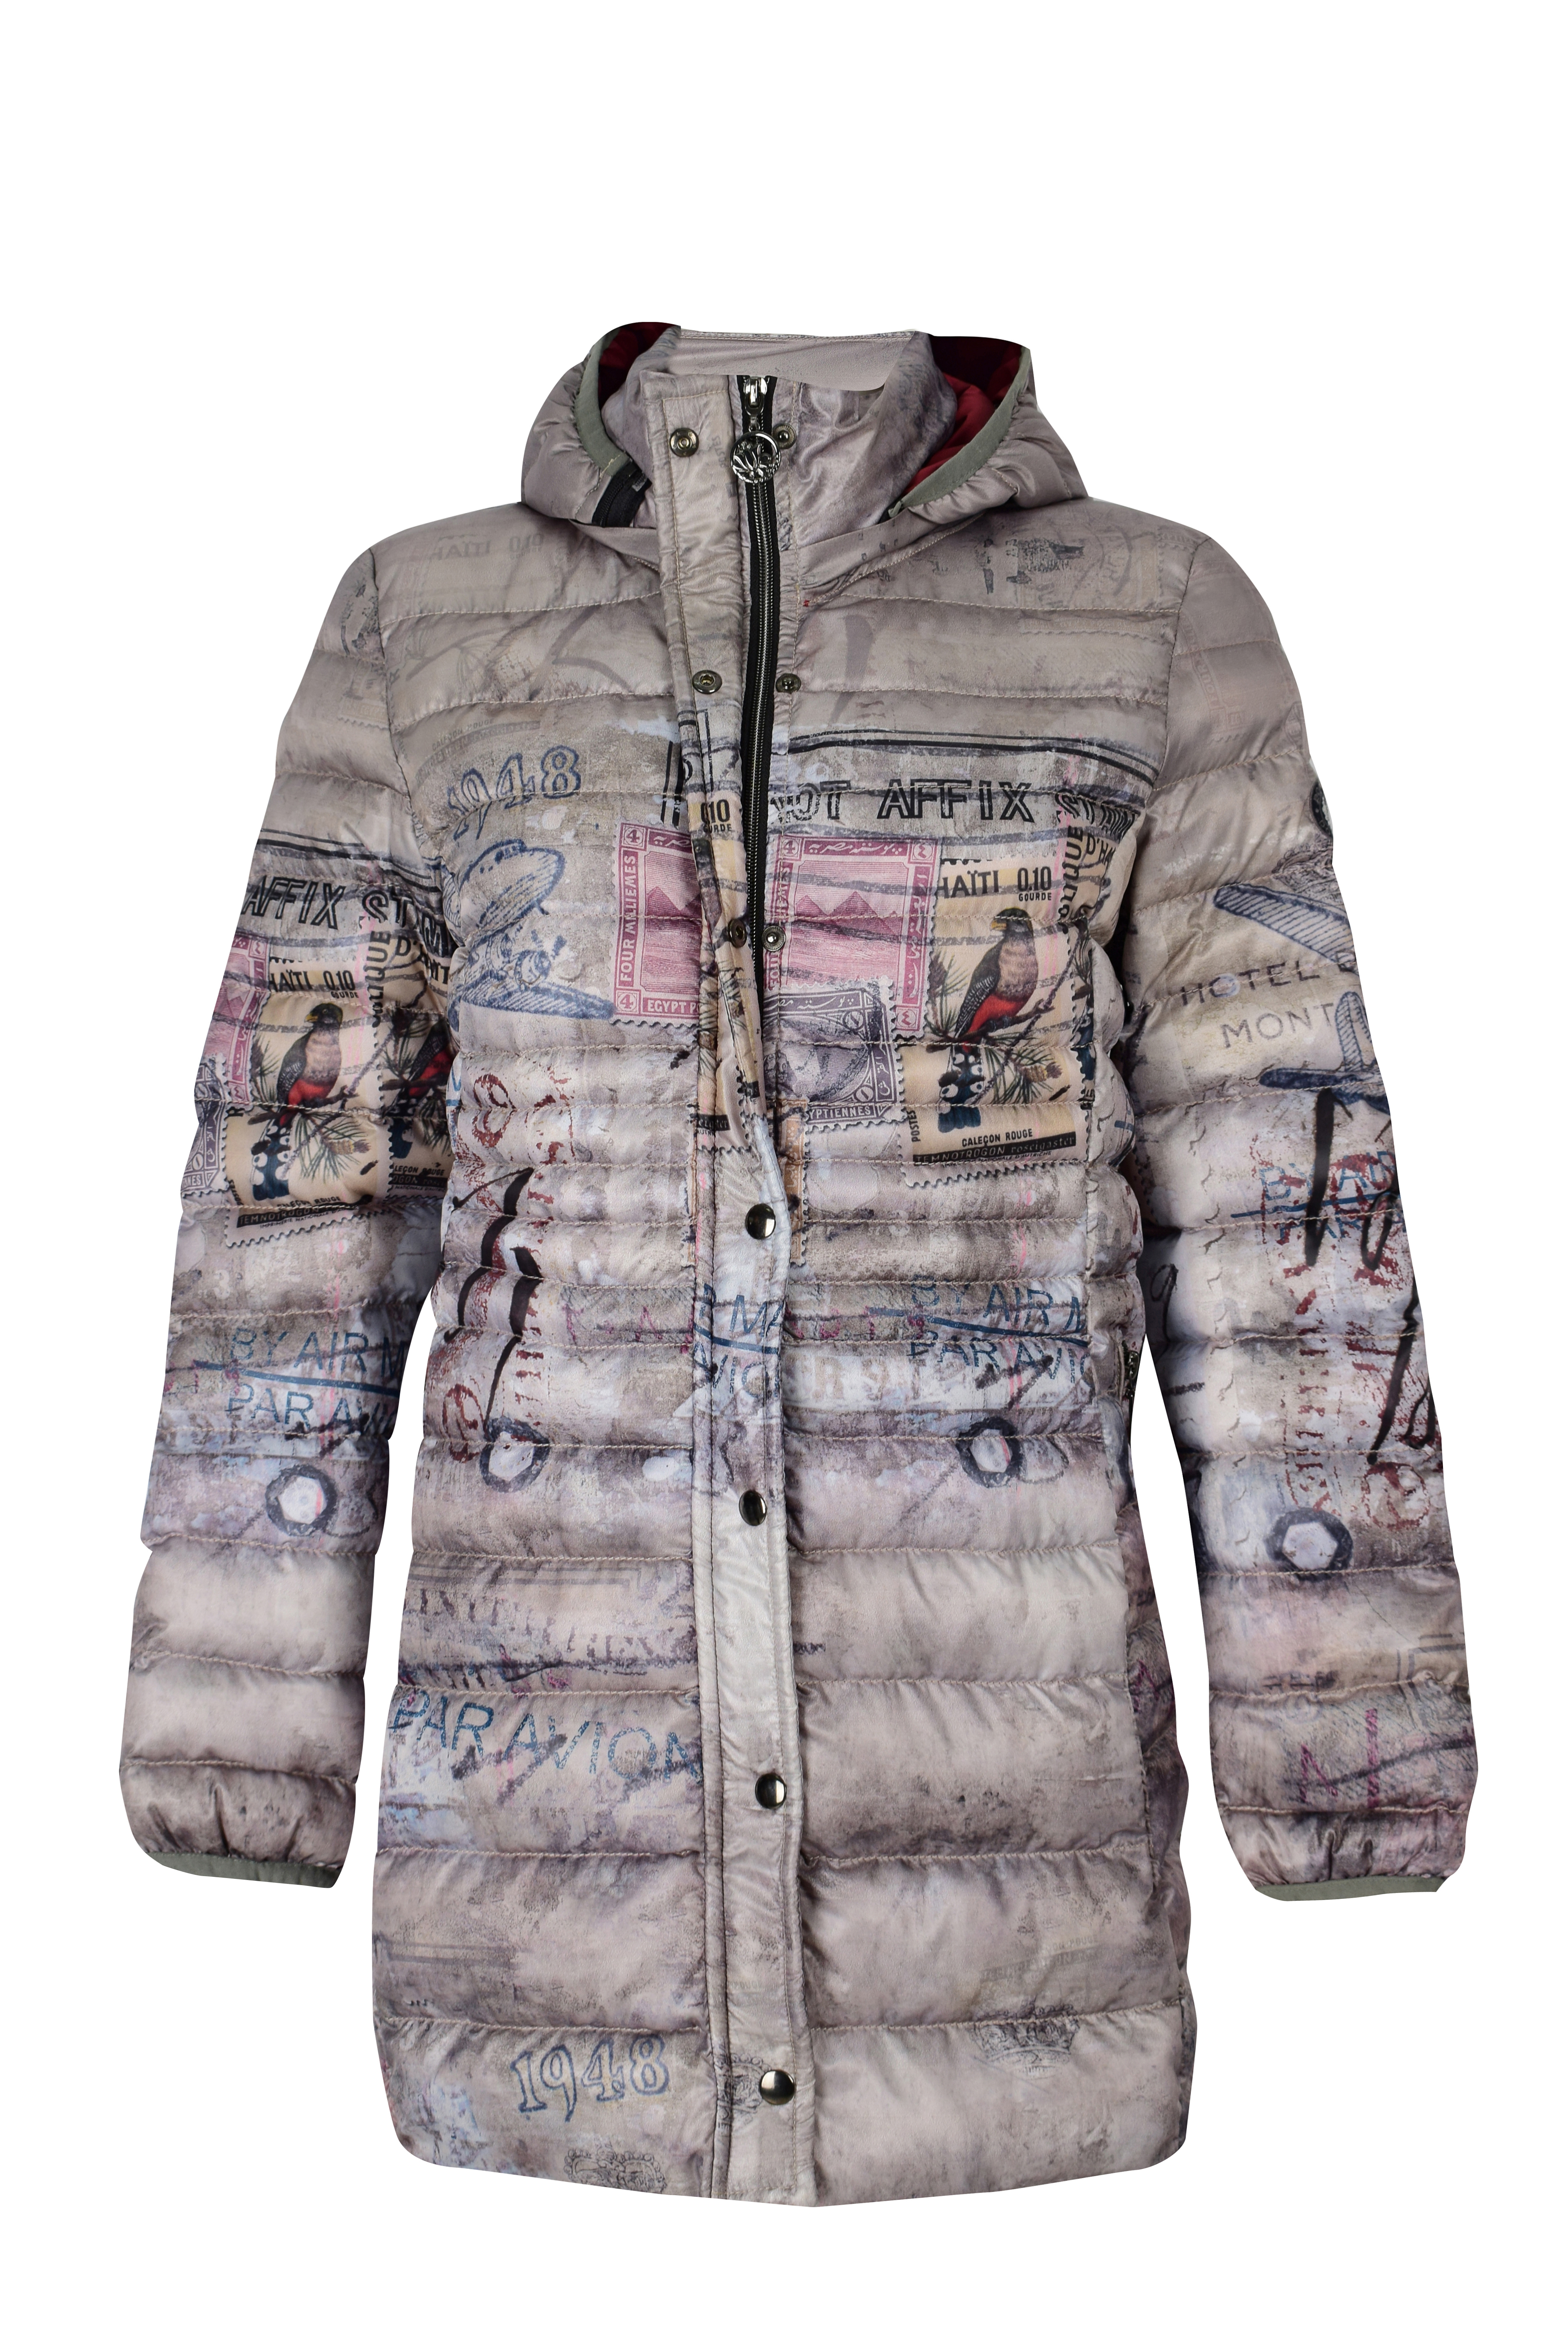 Simply Art Dolcezza: Do Not Affix Stamp Graffiti Abstract Art Puffer Coat SOLD OUT Dolcezza_SimplyArt_59871